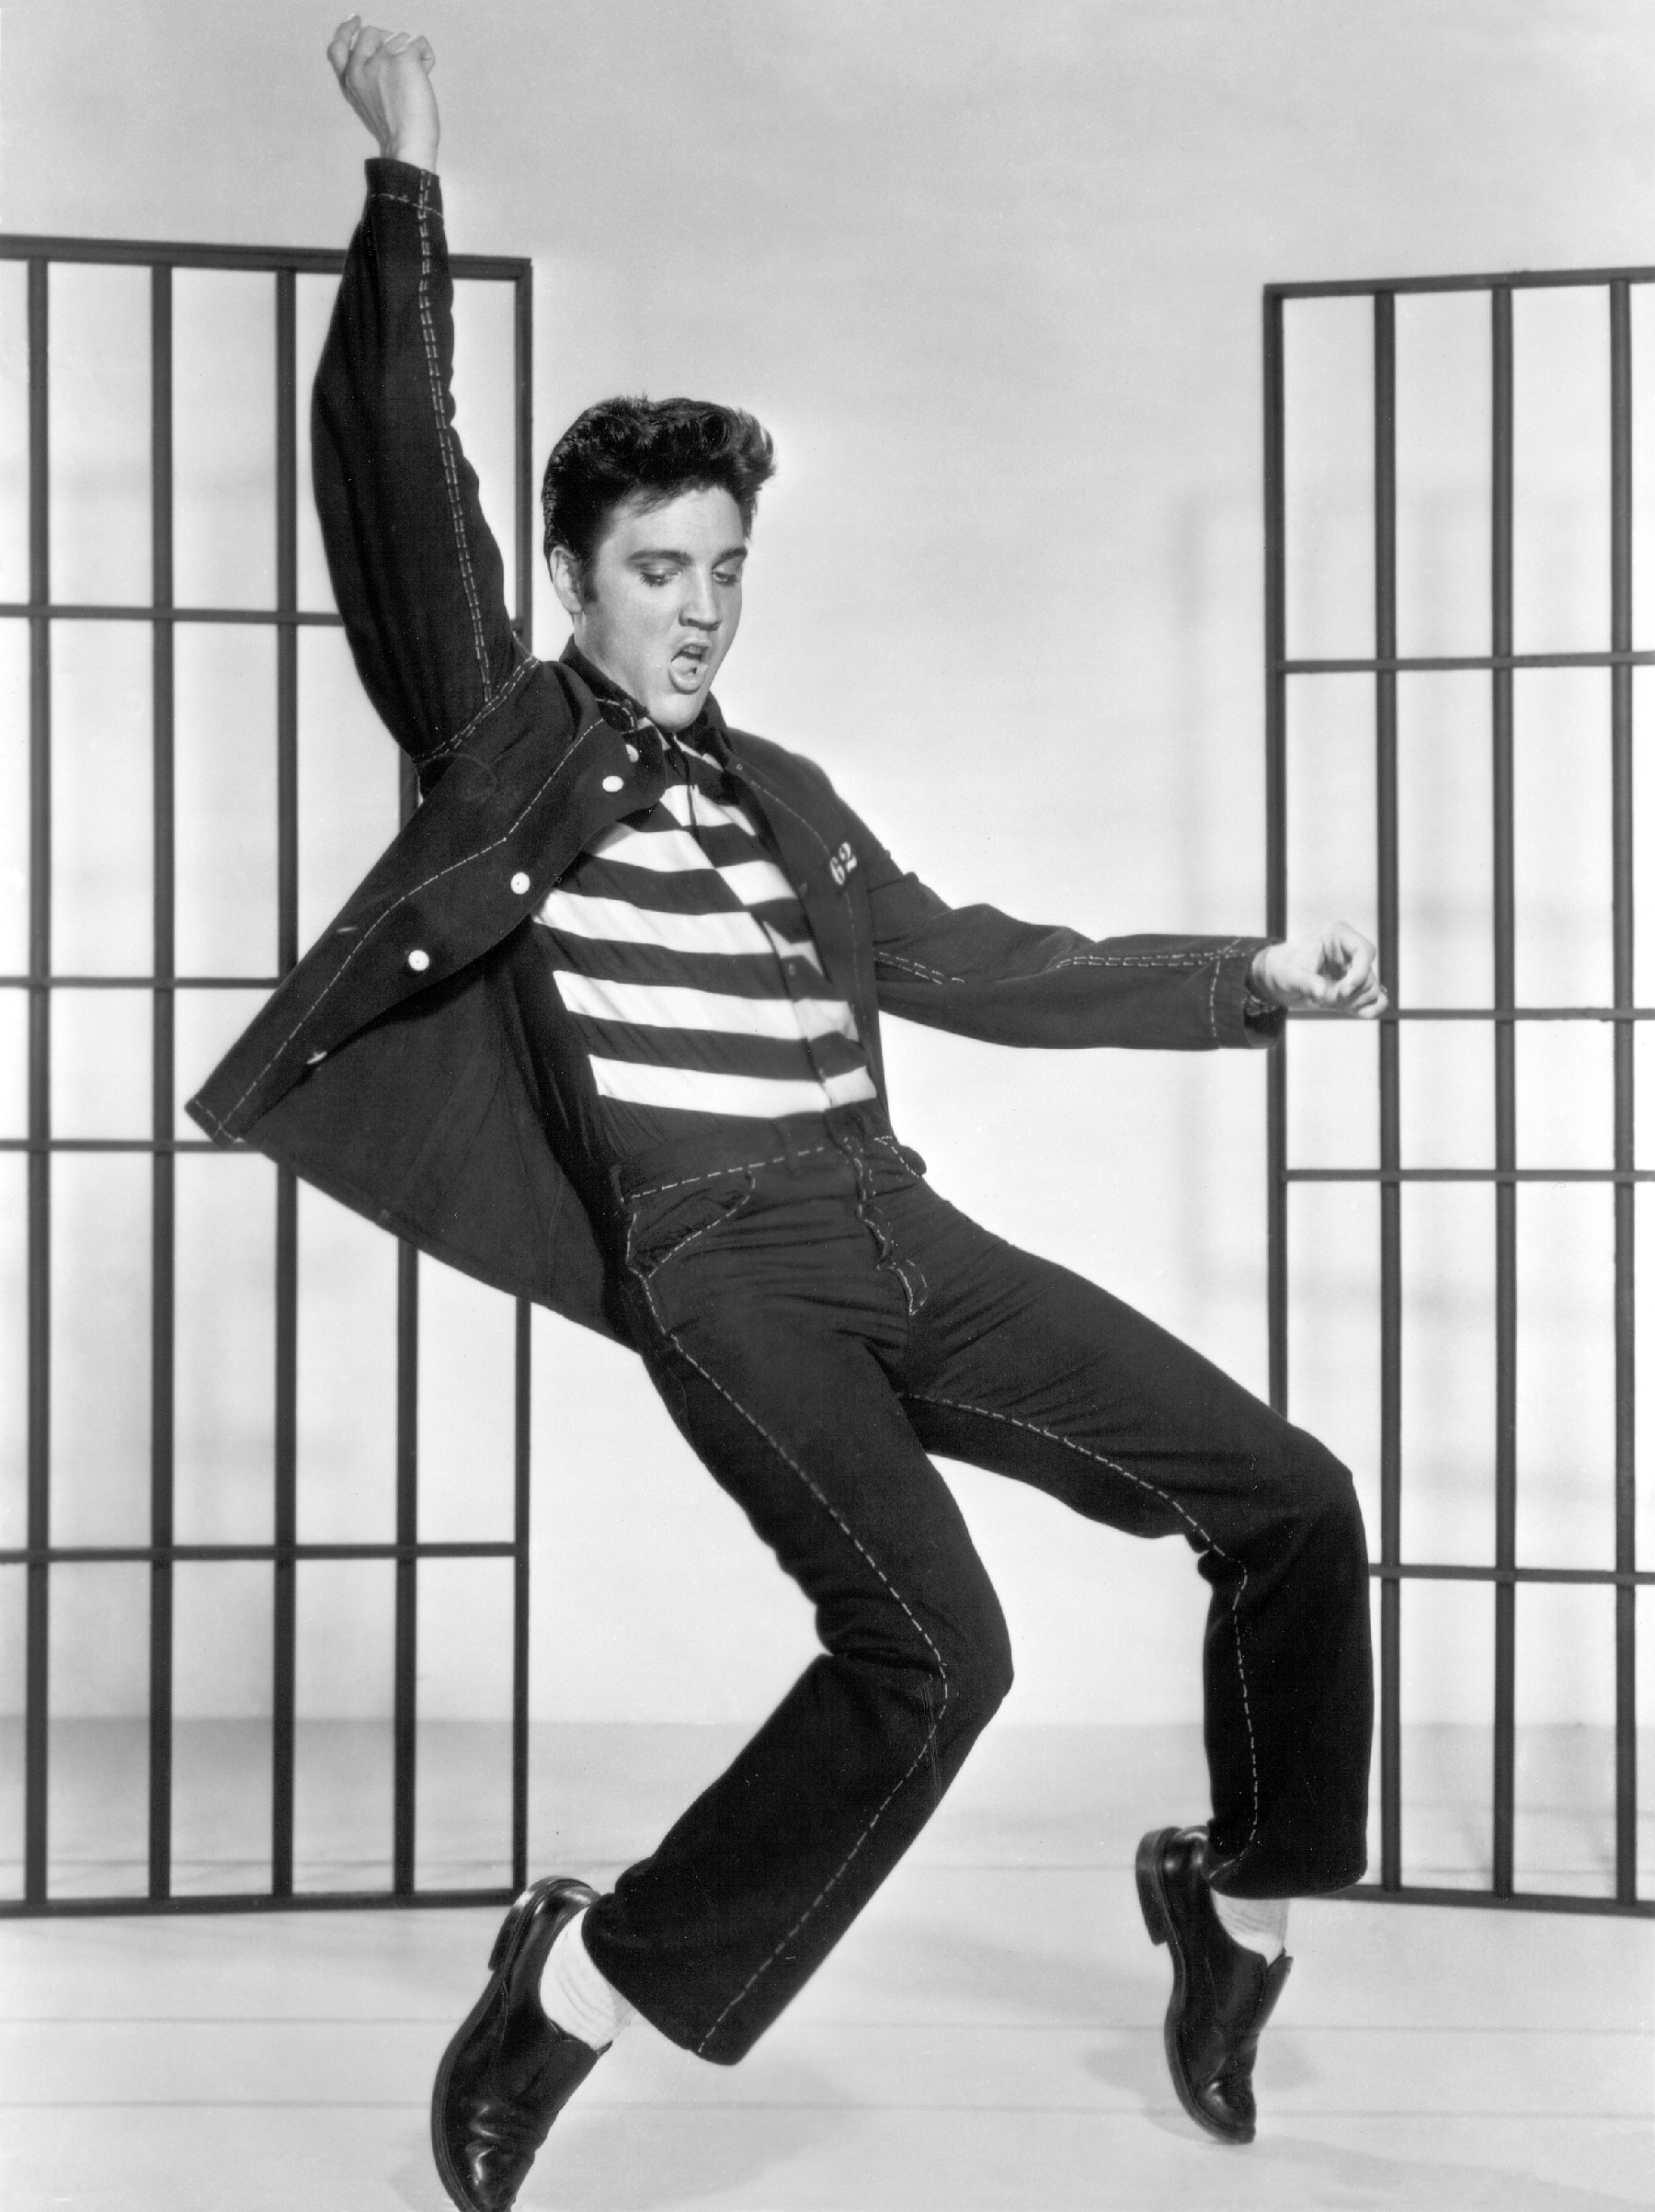 be33d5d45ab 20 Great Songs About Prison  Elvis Presley